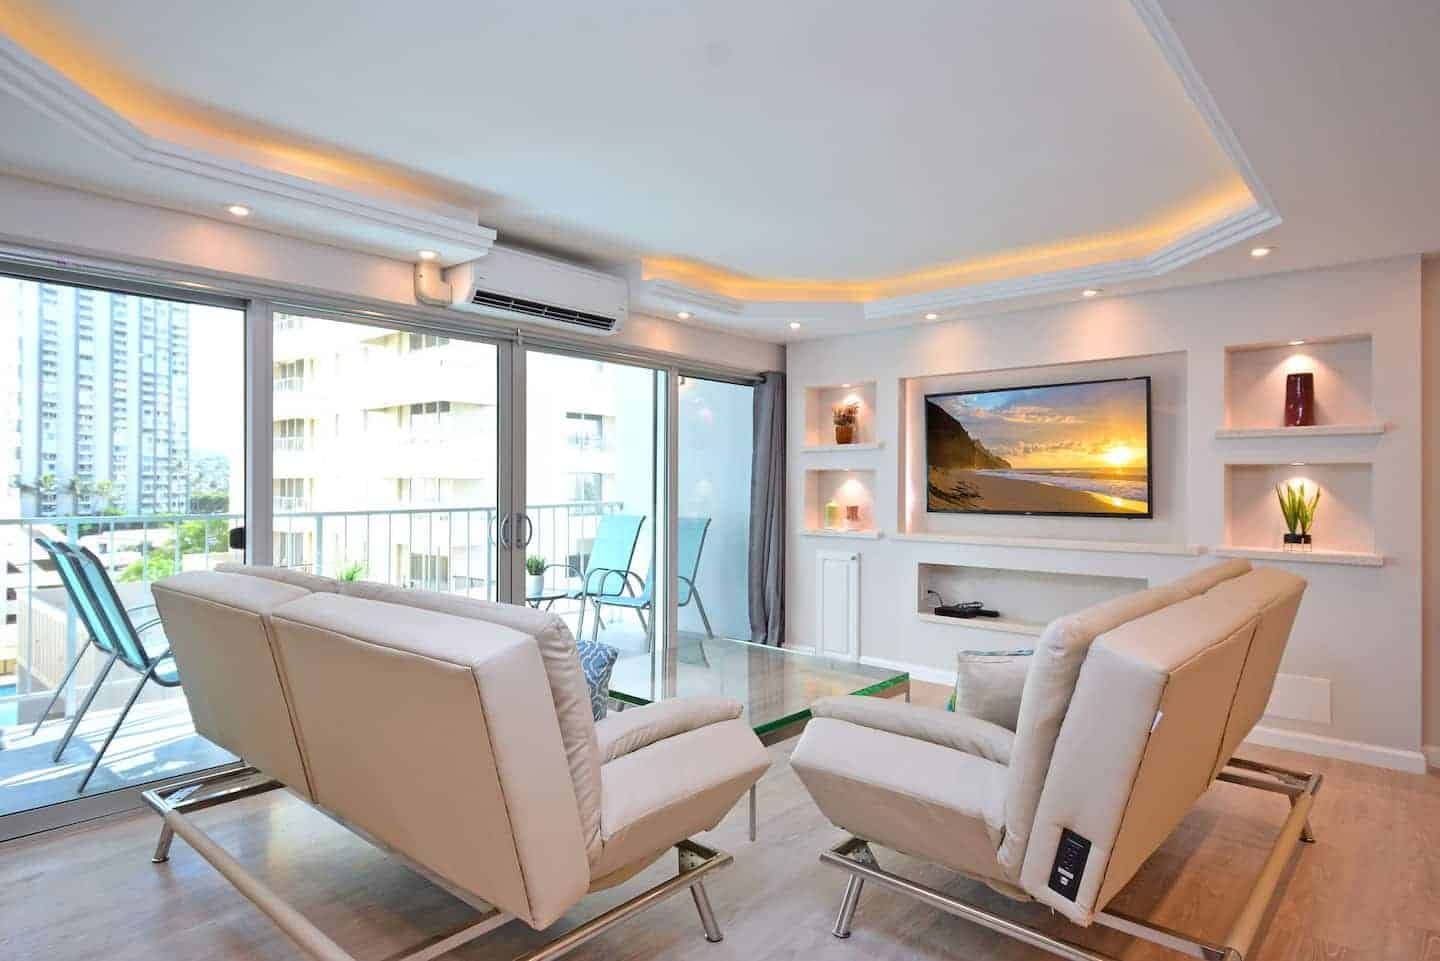 Image of Airbnb rental in Waikiki, Hawaii